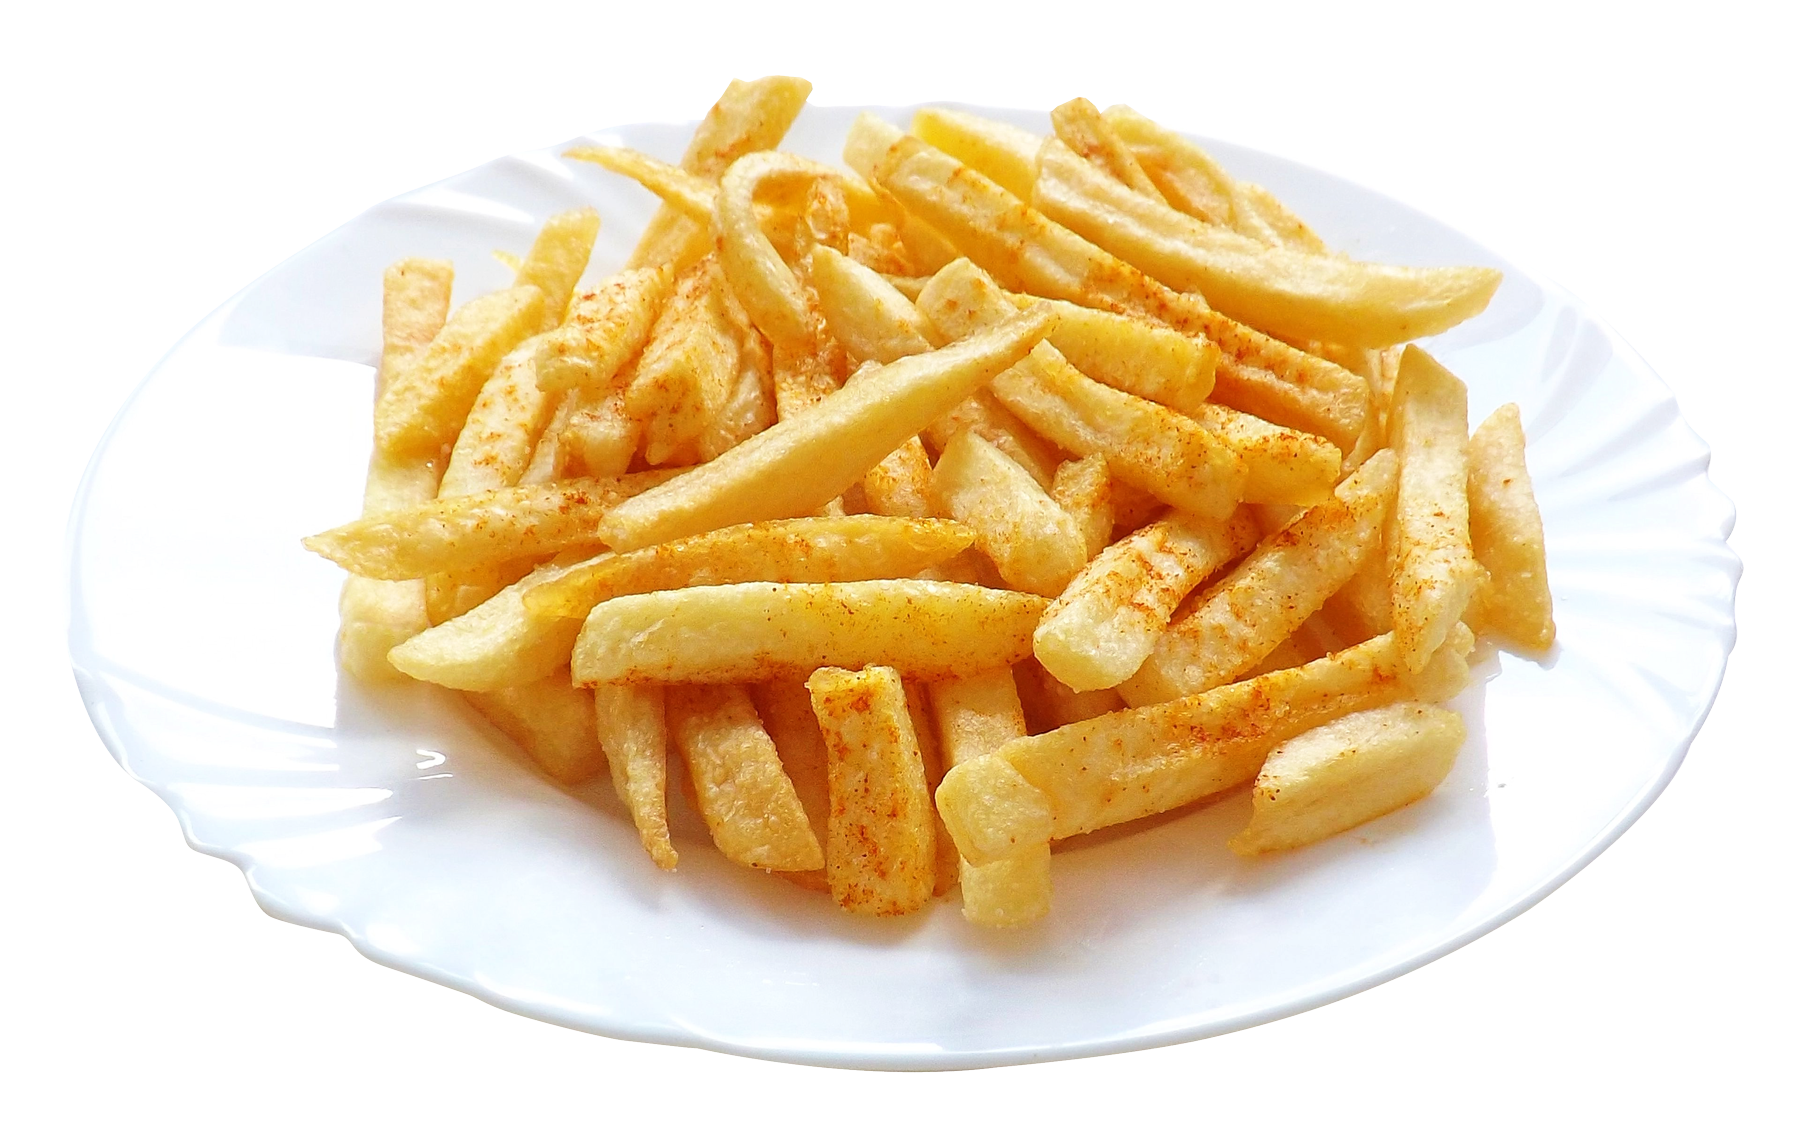 French png image purepng. Fries clipart plate fry